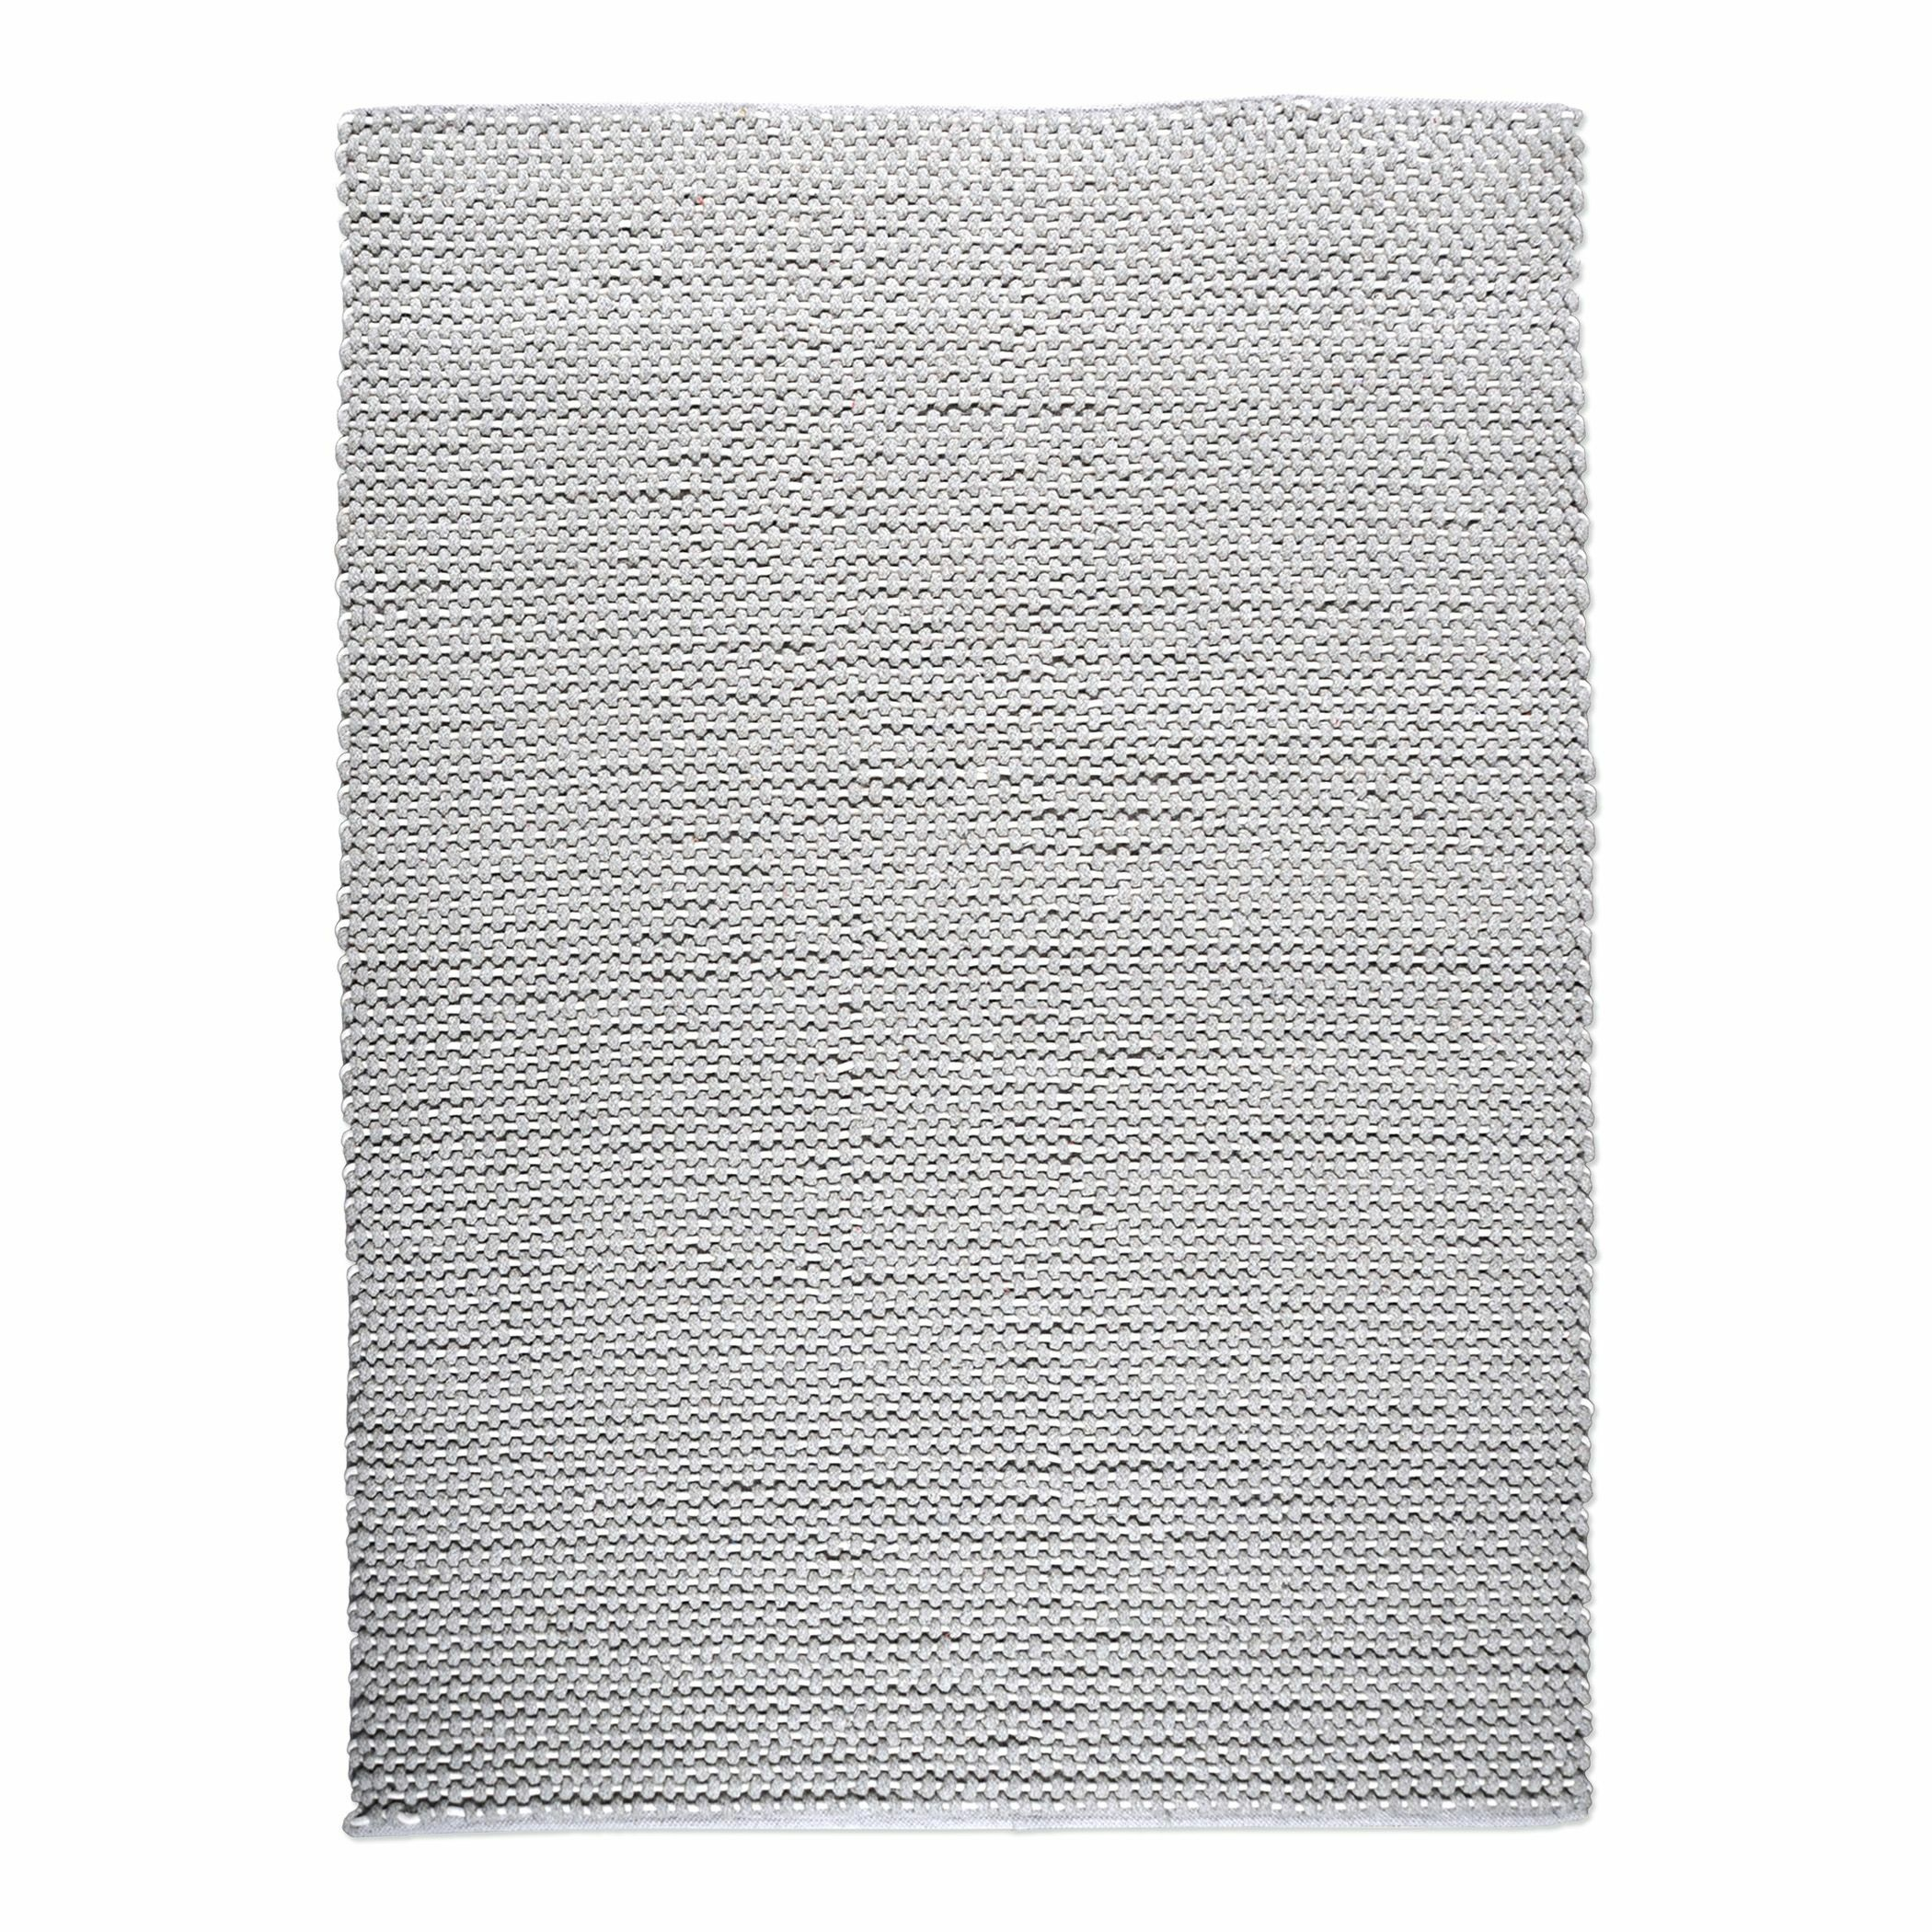 Petra Hand Woven Wool Gray Area Rug Rug Size: Rectangle 5' x 8'